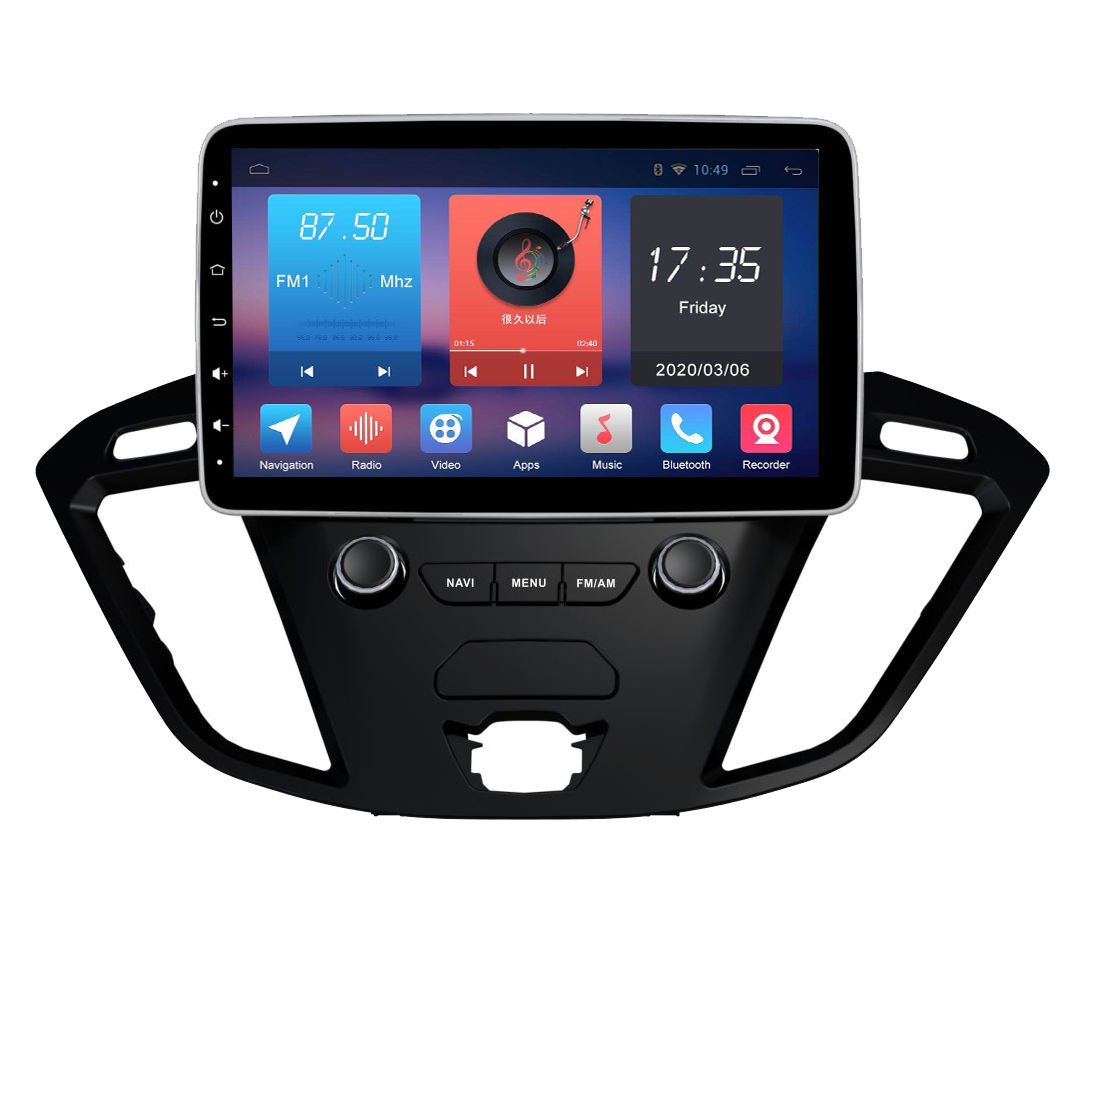 ANDROID 10,0 AUTO RADIO auto <span class=keywords><strong>dvd</strong></span> player universal Für FORD TRANSIT auto <span class=keywords><strong>dvd</strong></span> player für Ford TOURNEO/Transit 150/250/350/350 2013